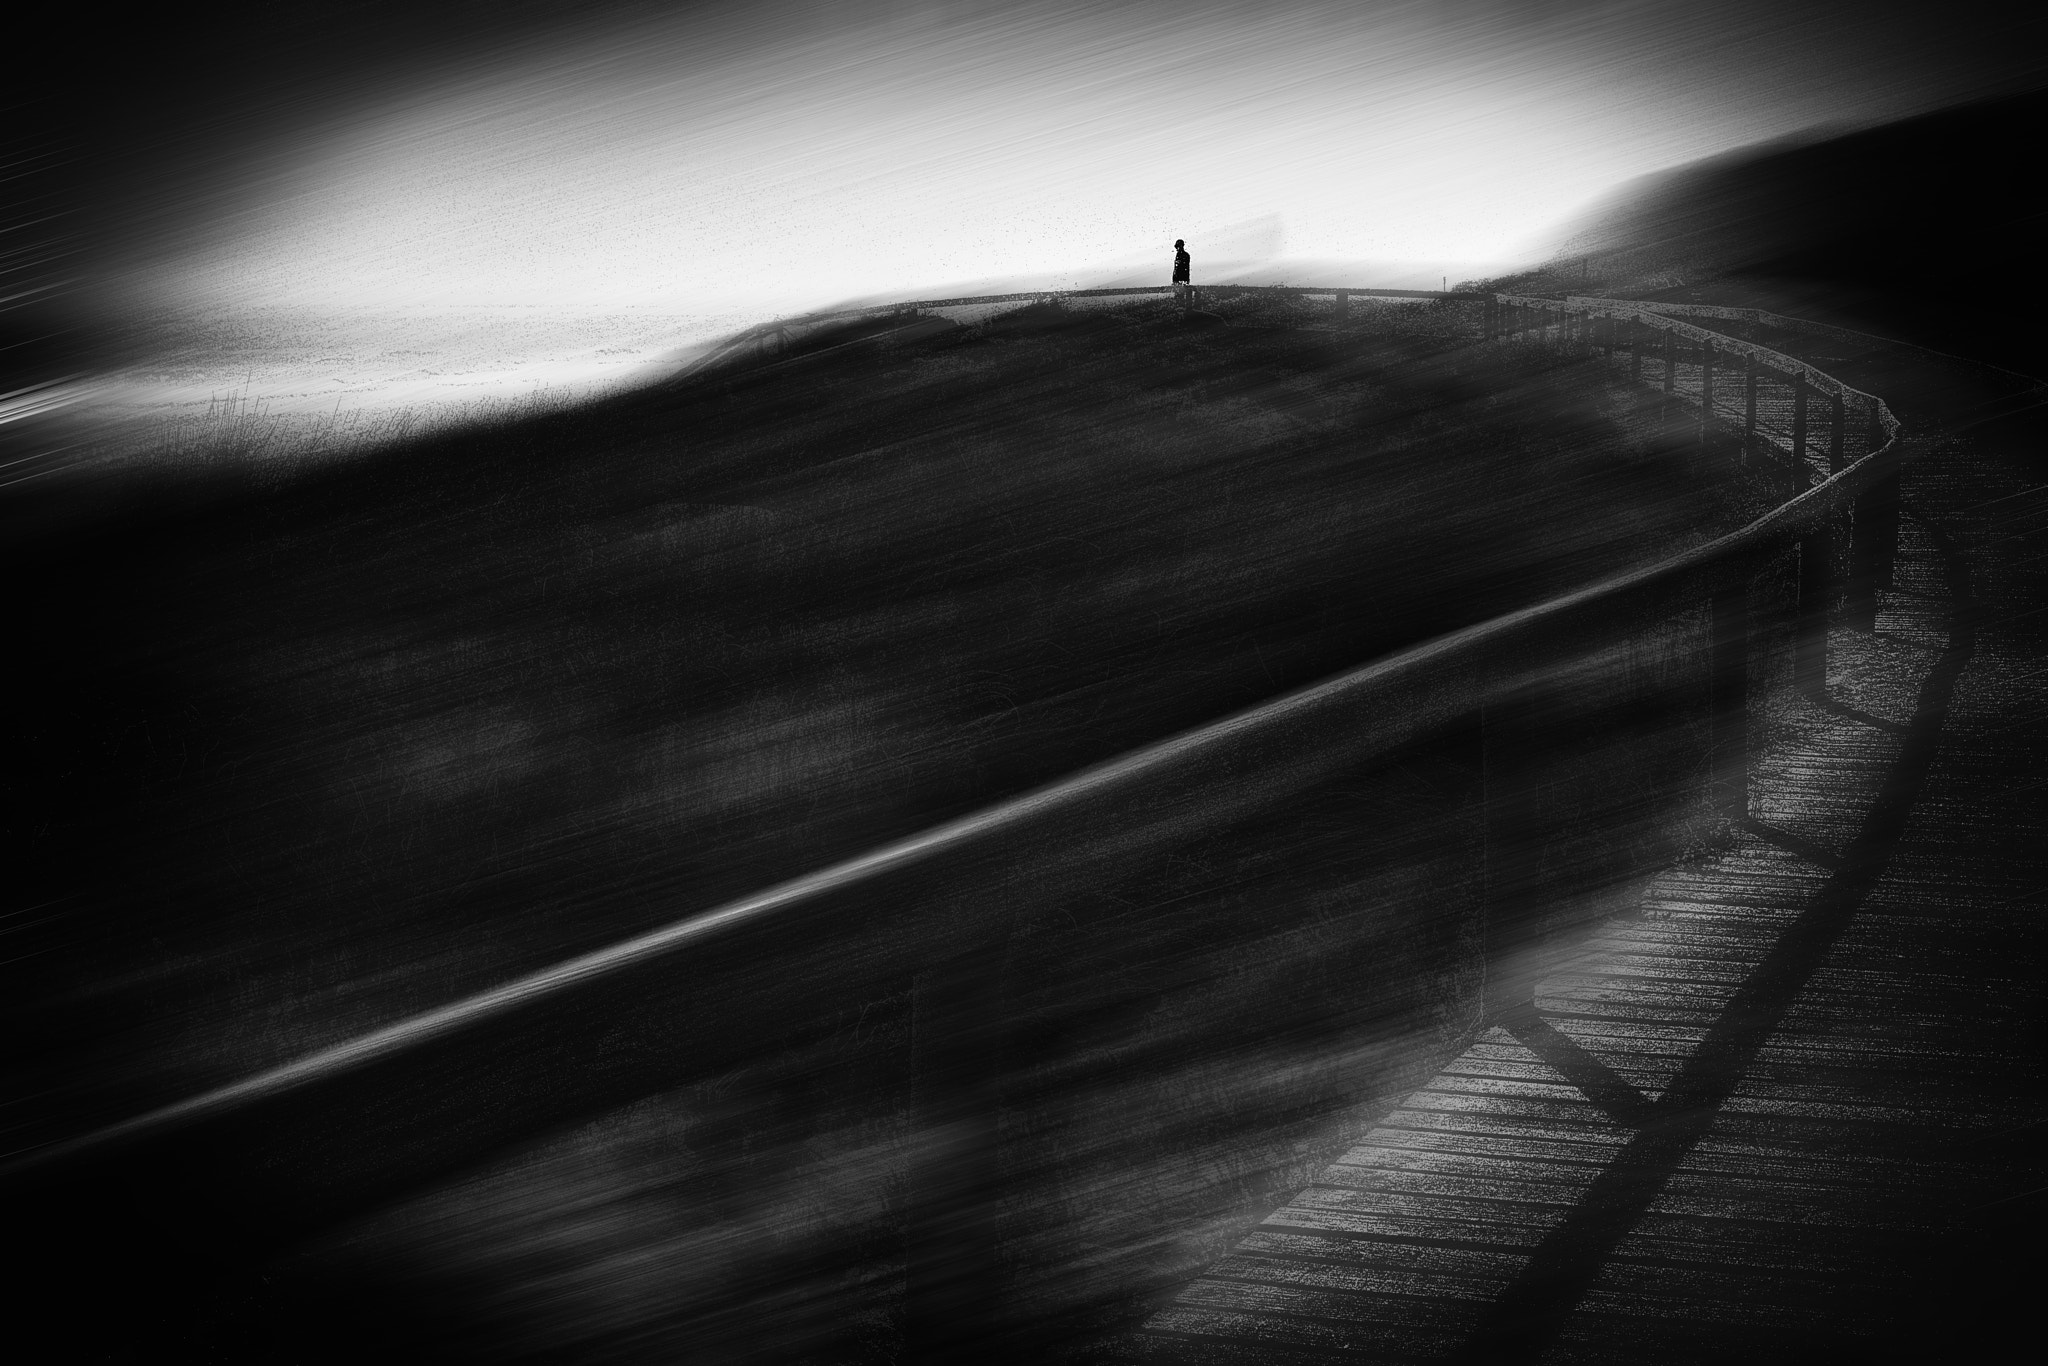 Photograph Monologue by Paulo Abrantes on 500px